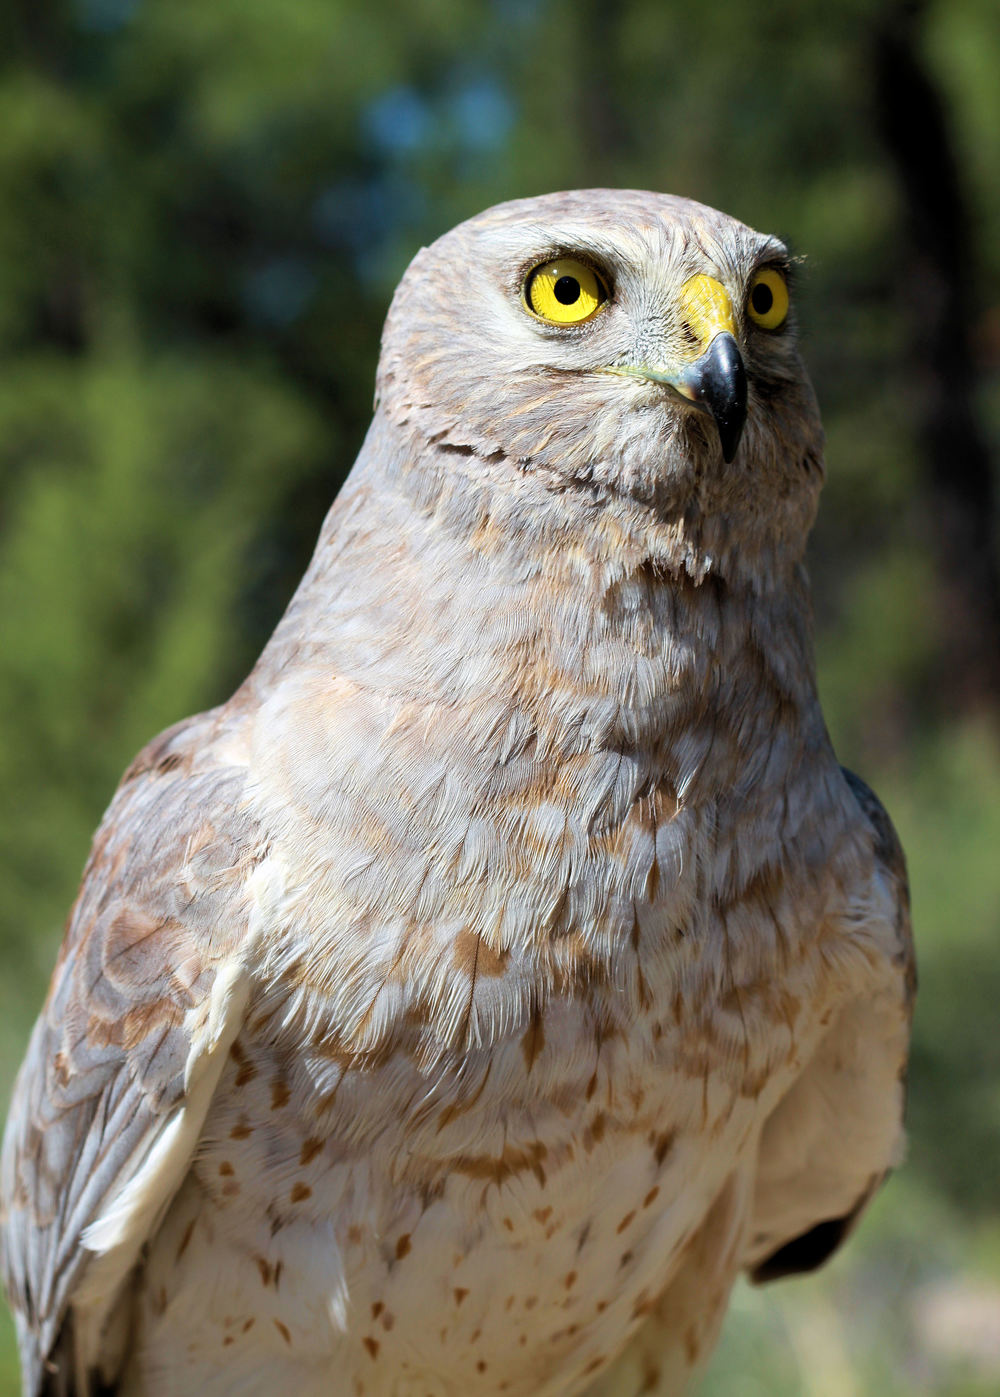 Male Northern Harrier - By Jon Nelson from Bend, Oregon, USA (Male Northern Harrier) [CC BY 2.0], via Wikimedia Commons